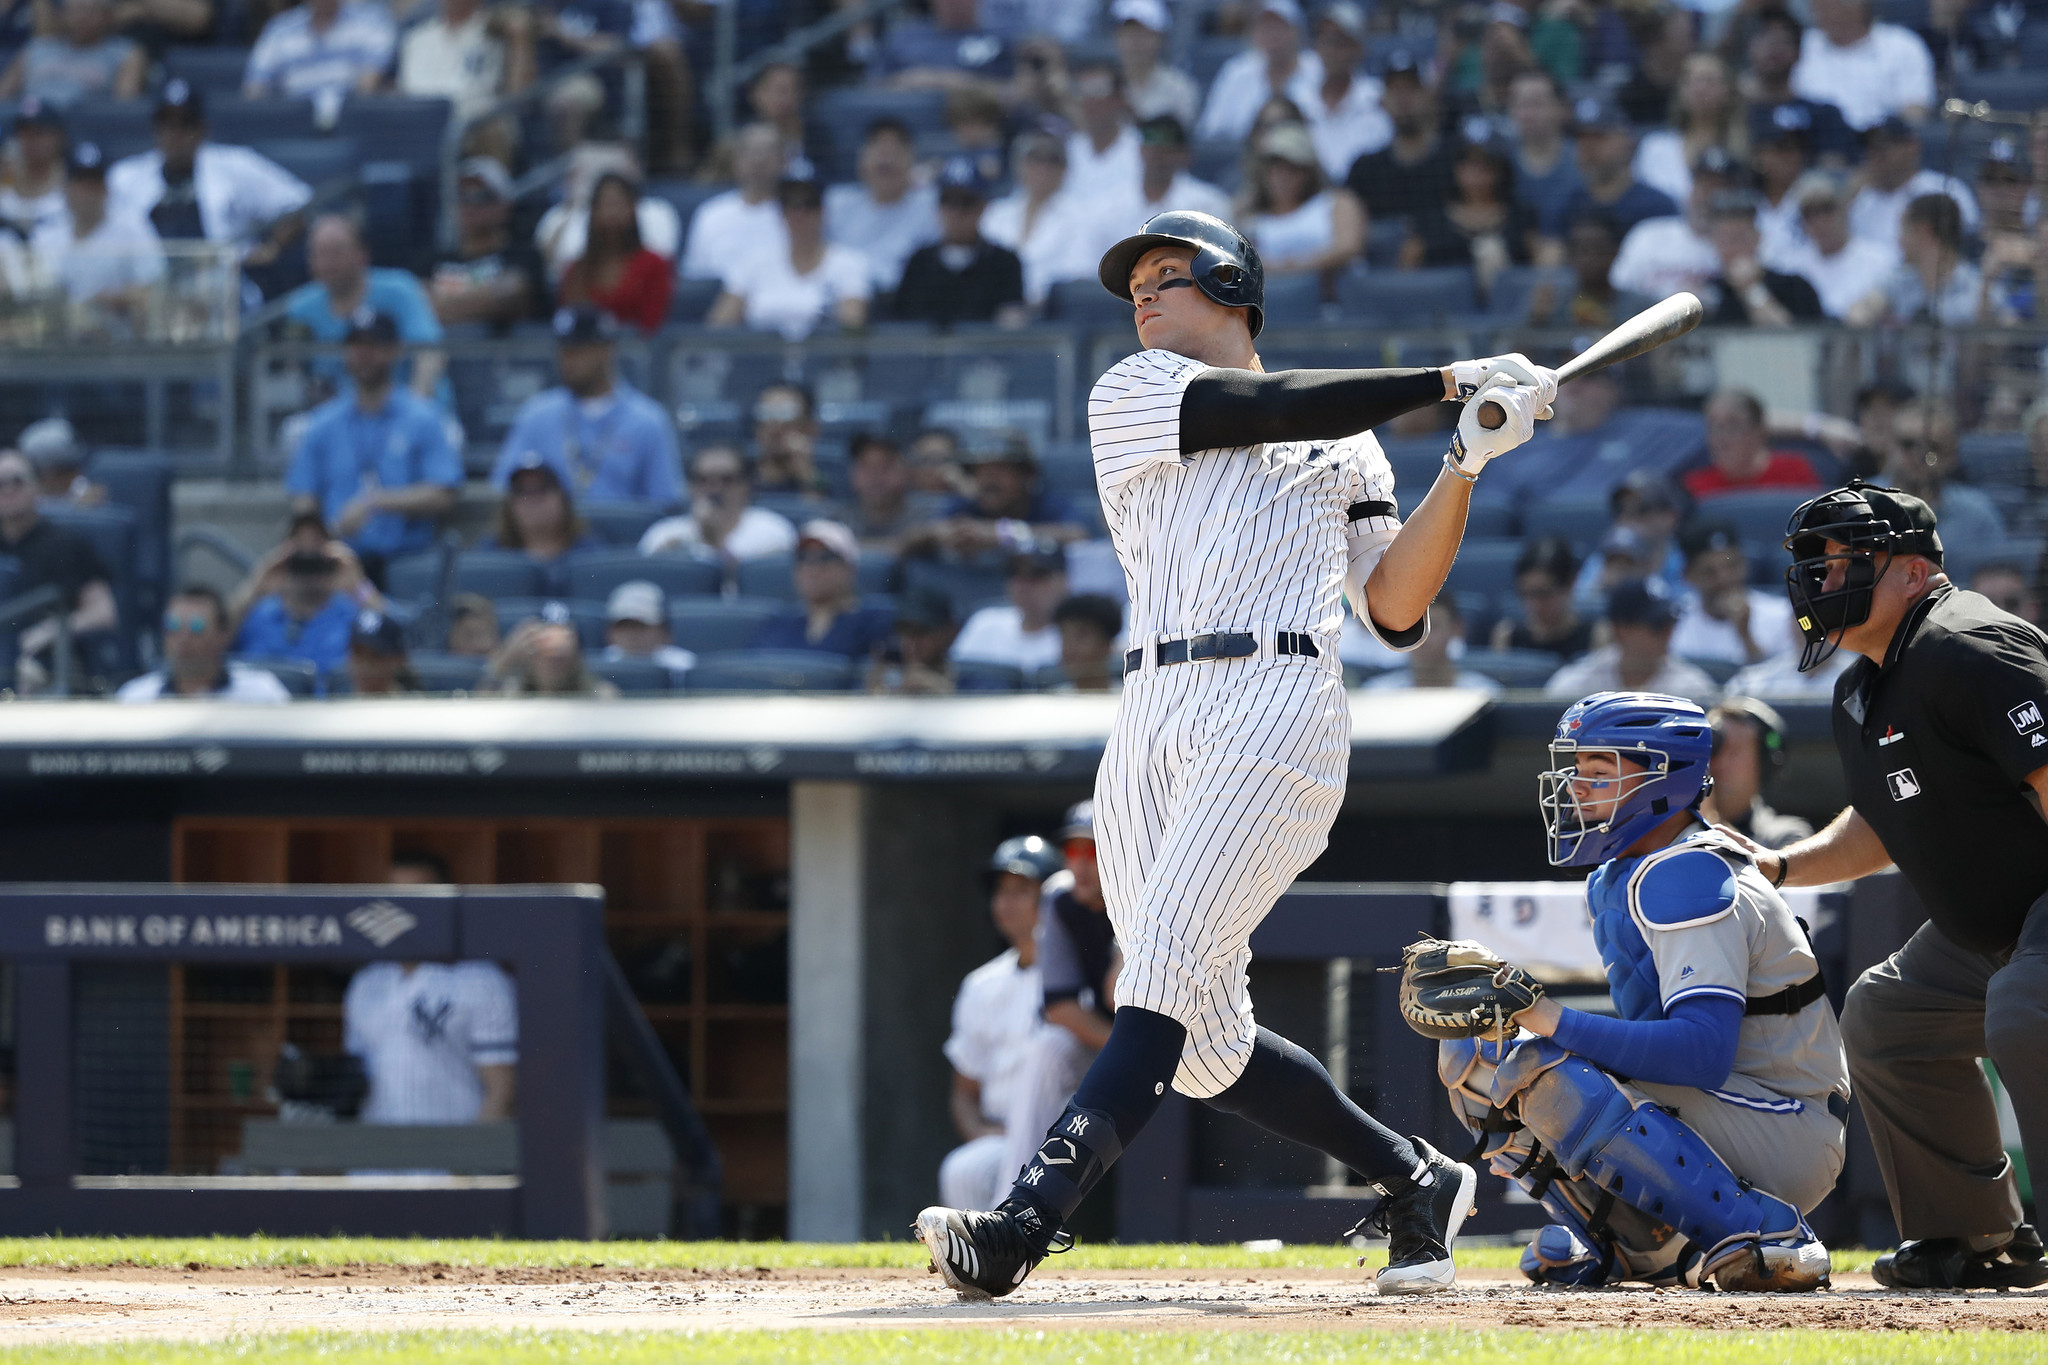 Aaron Judge can have Jeter-like impact on Yankees, if he's able to stay healthy